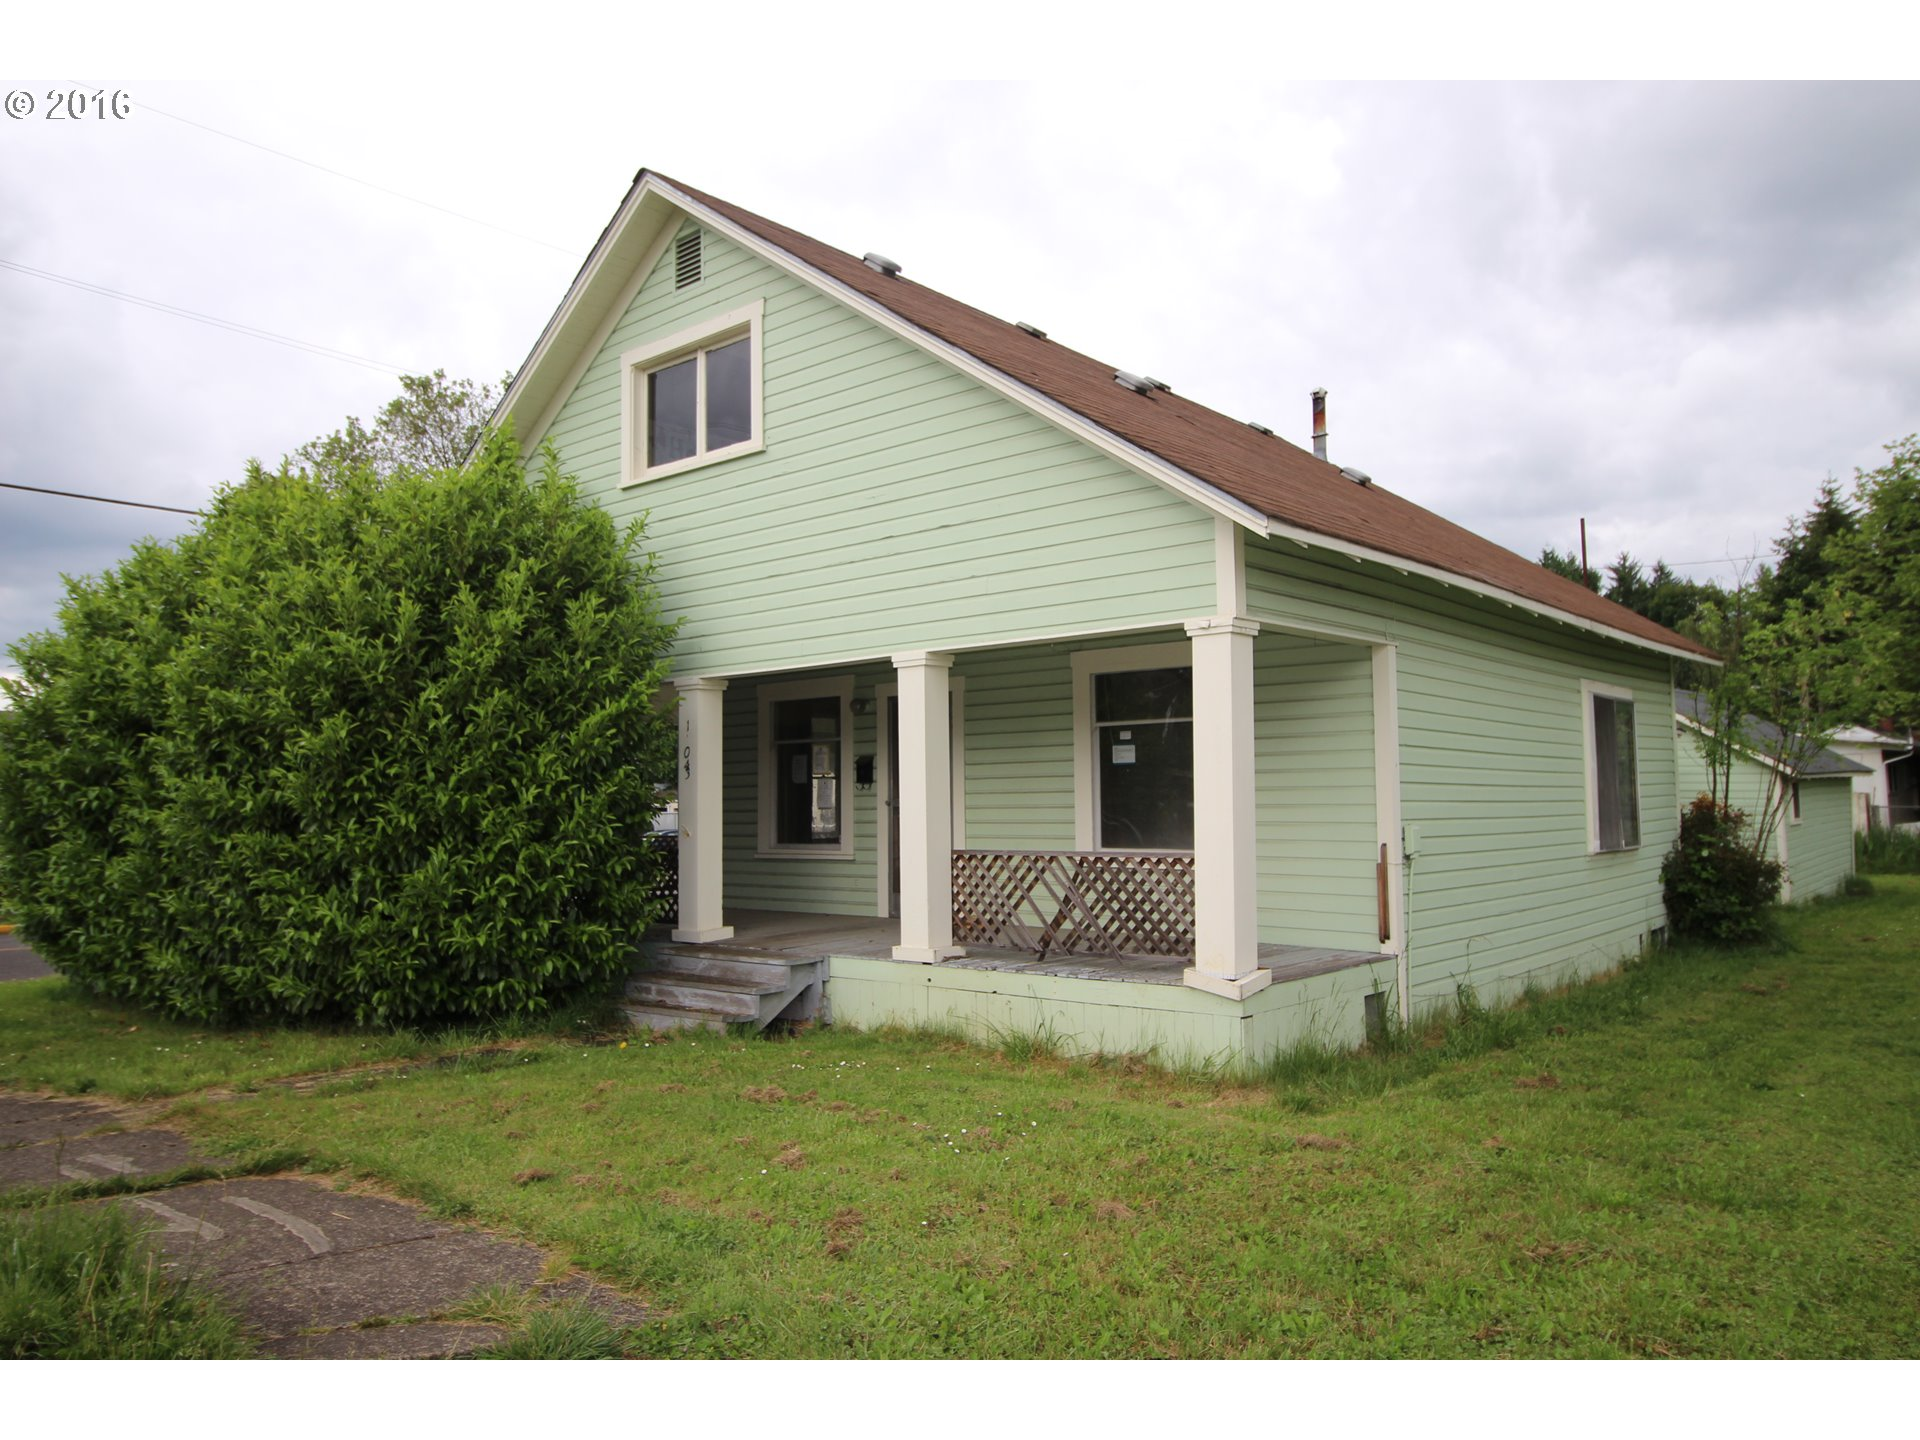 1304 S 6th St, Cottage Grove, OR